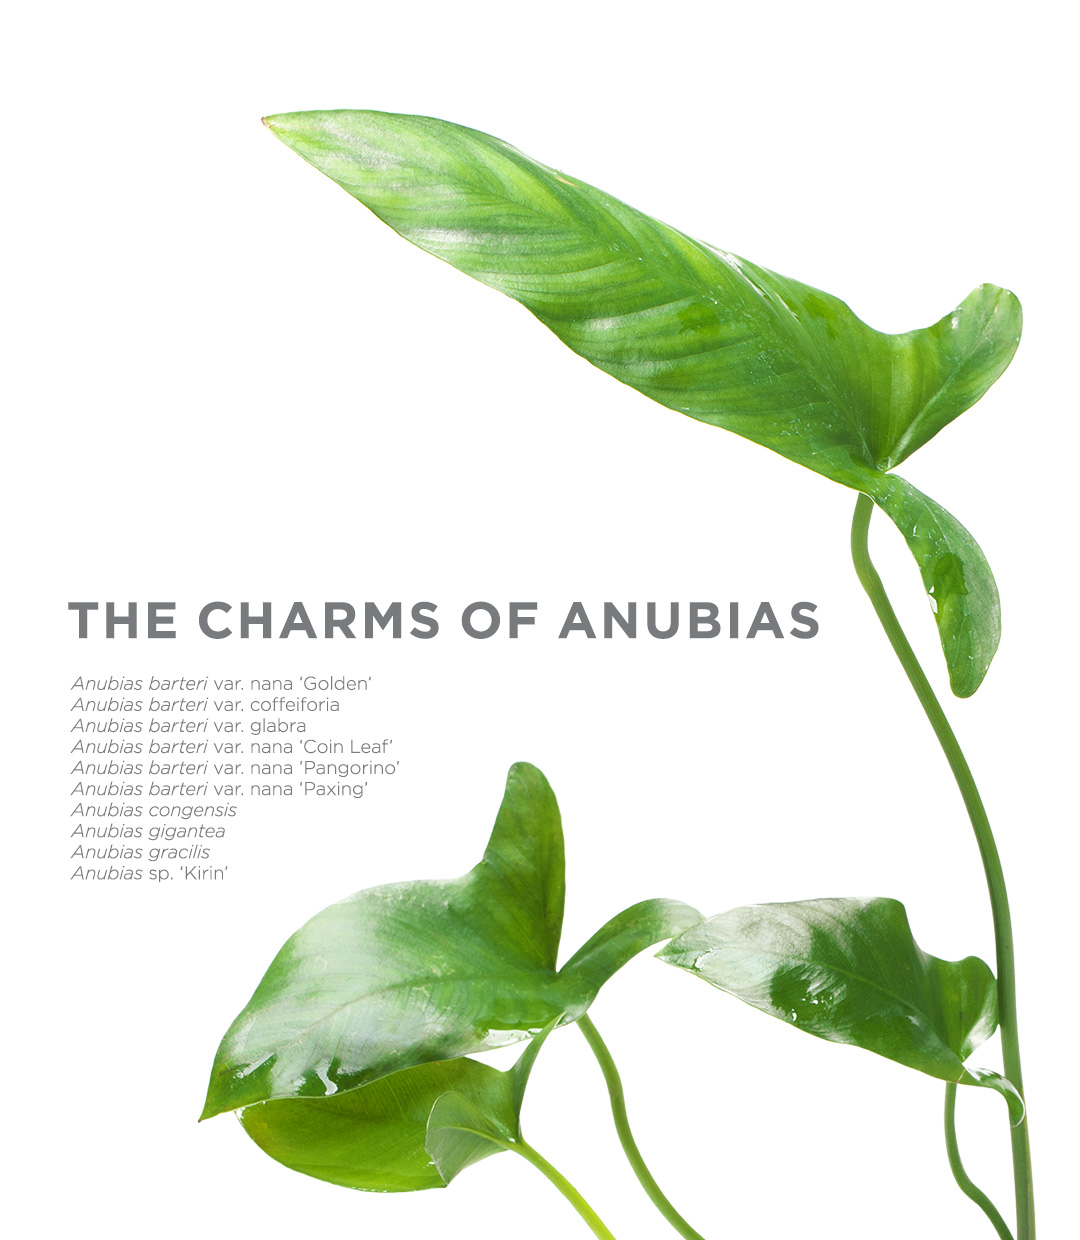 THE CHARMS OF ANUBIAS  -魅惑のアヌビアス10種-